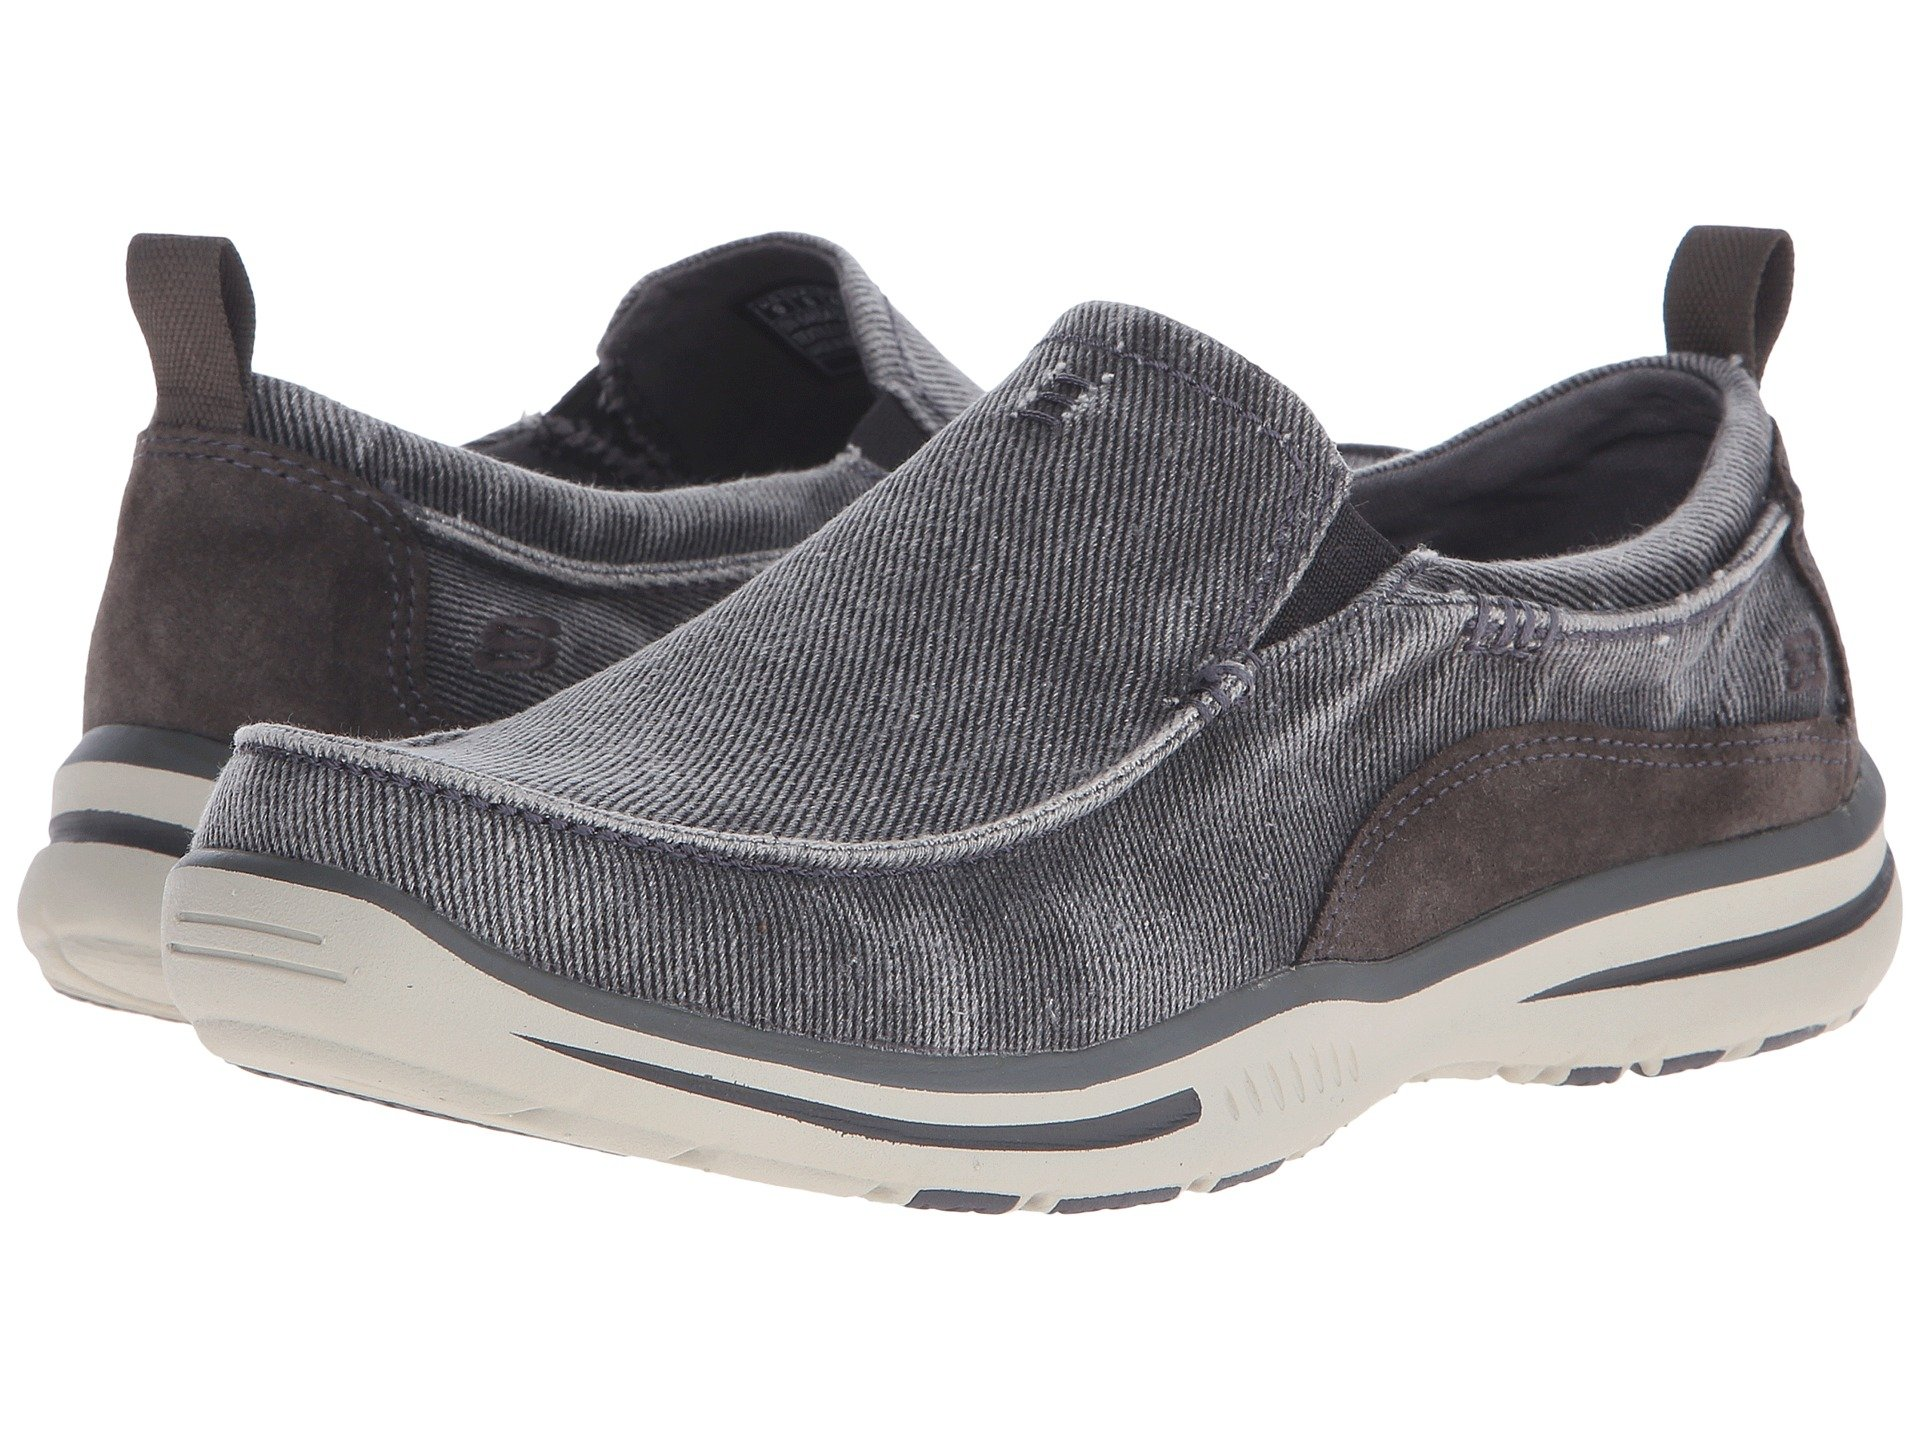 Skechers Relaxed Fit Elected Drigo At Zappos Com